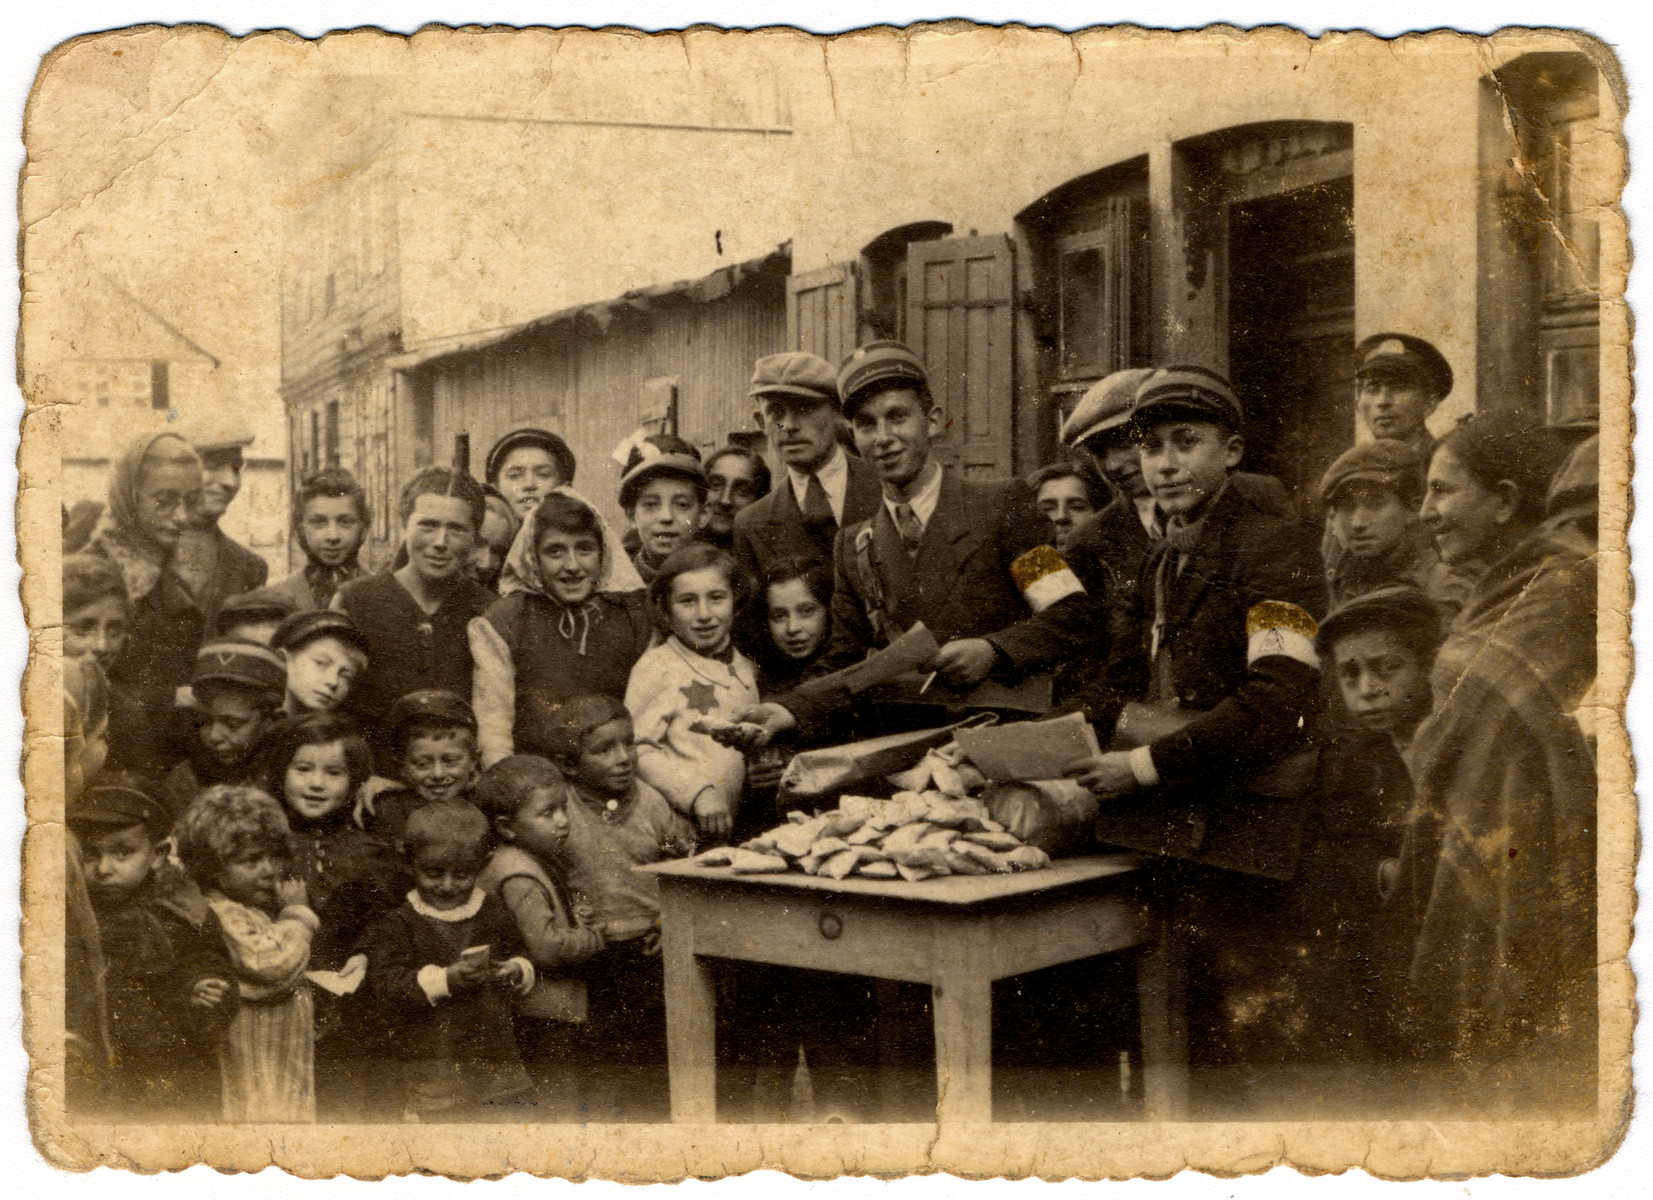 """J. Lewkowicz and A. Jakobowicz distribute candy for the holidays to the children in the Lodz ghetto.  [See #89759 for black/white version]  The original caption reads """"Memento for distribution of candy to children."""""""